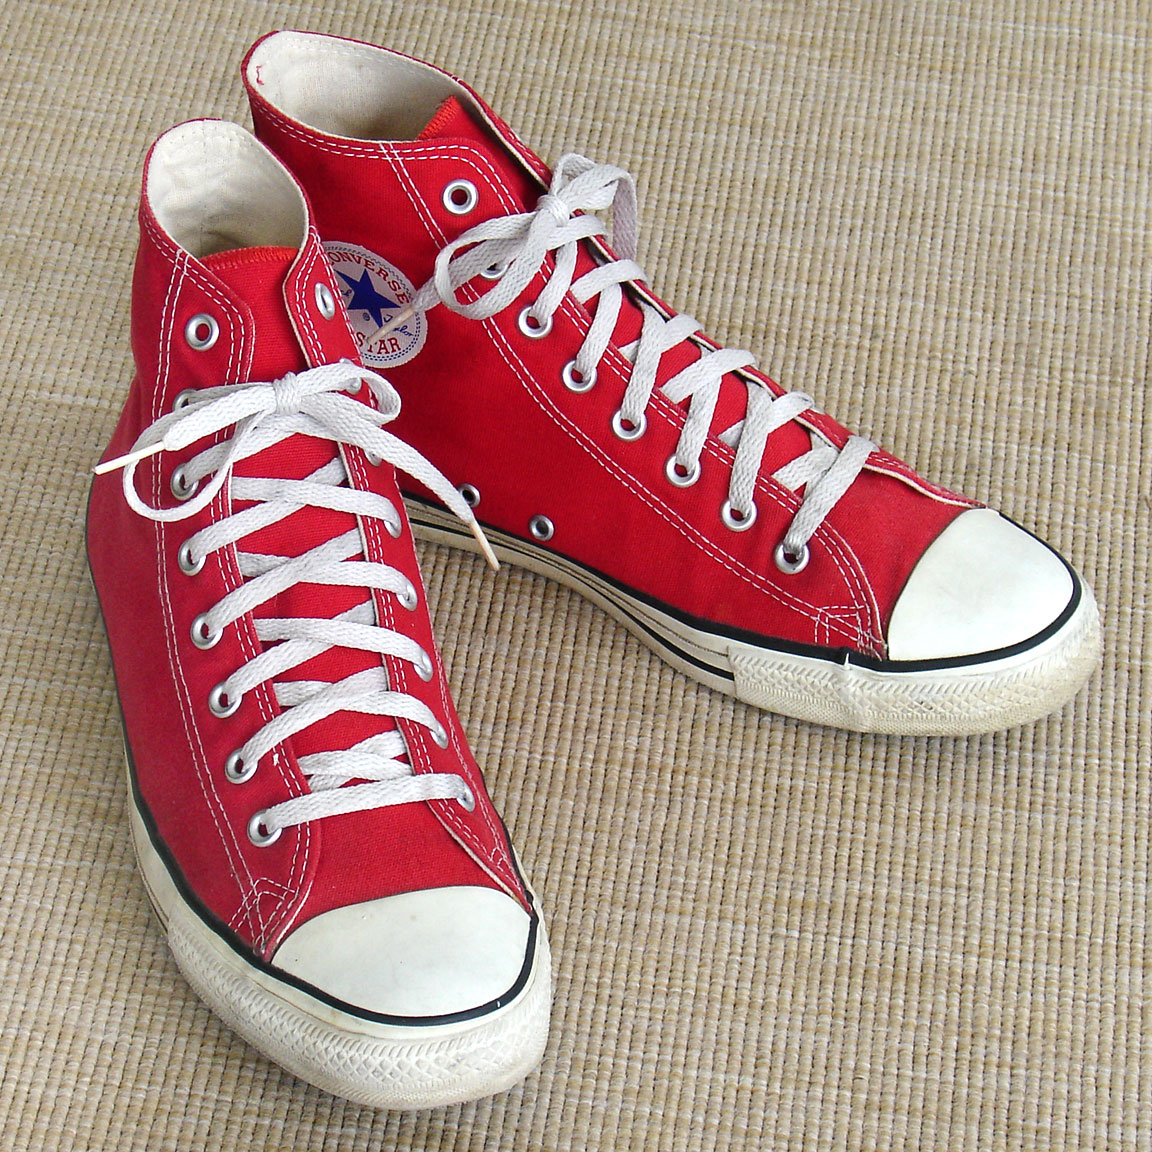 20ce317b516d Vintage red hi-top American-made Converse All Star Chuck Taylor shoes for  sale